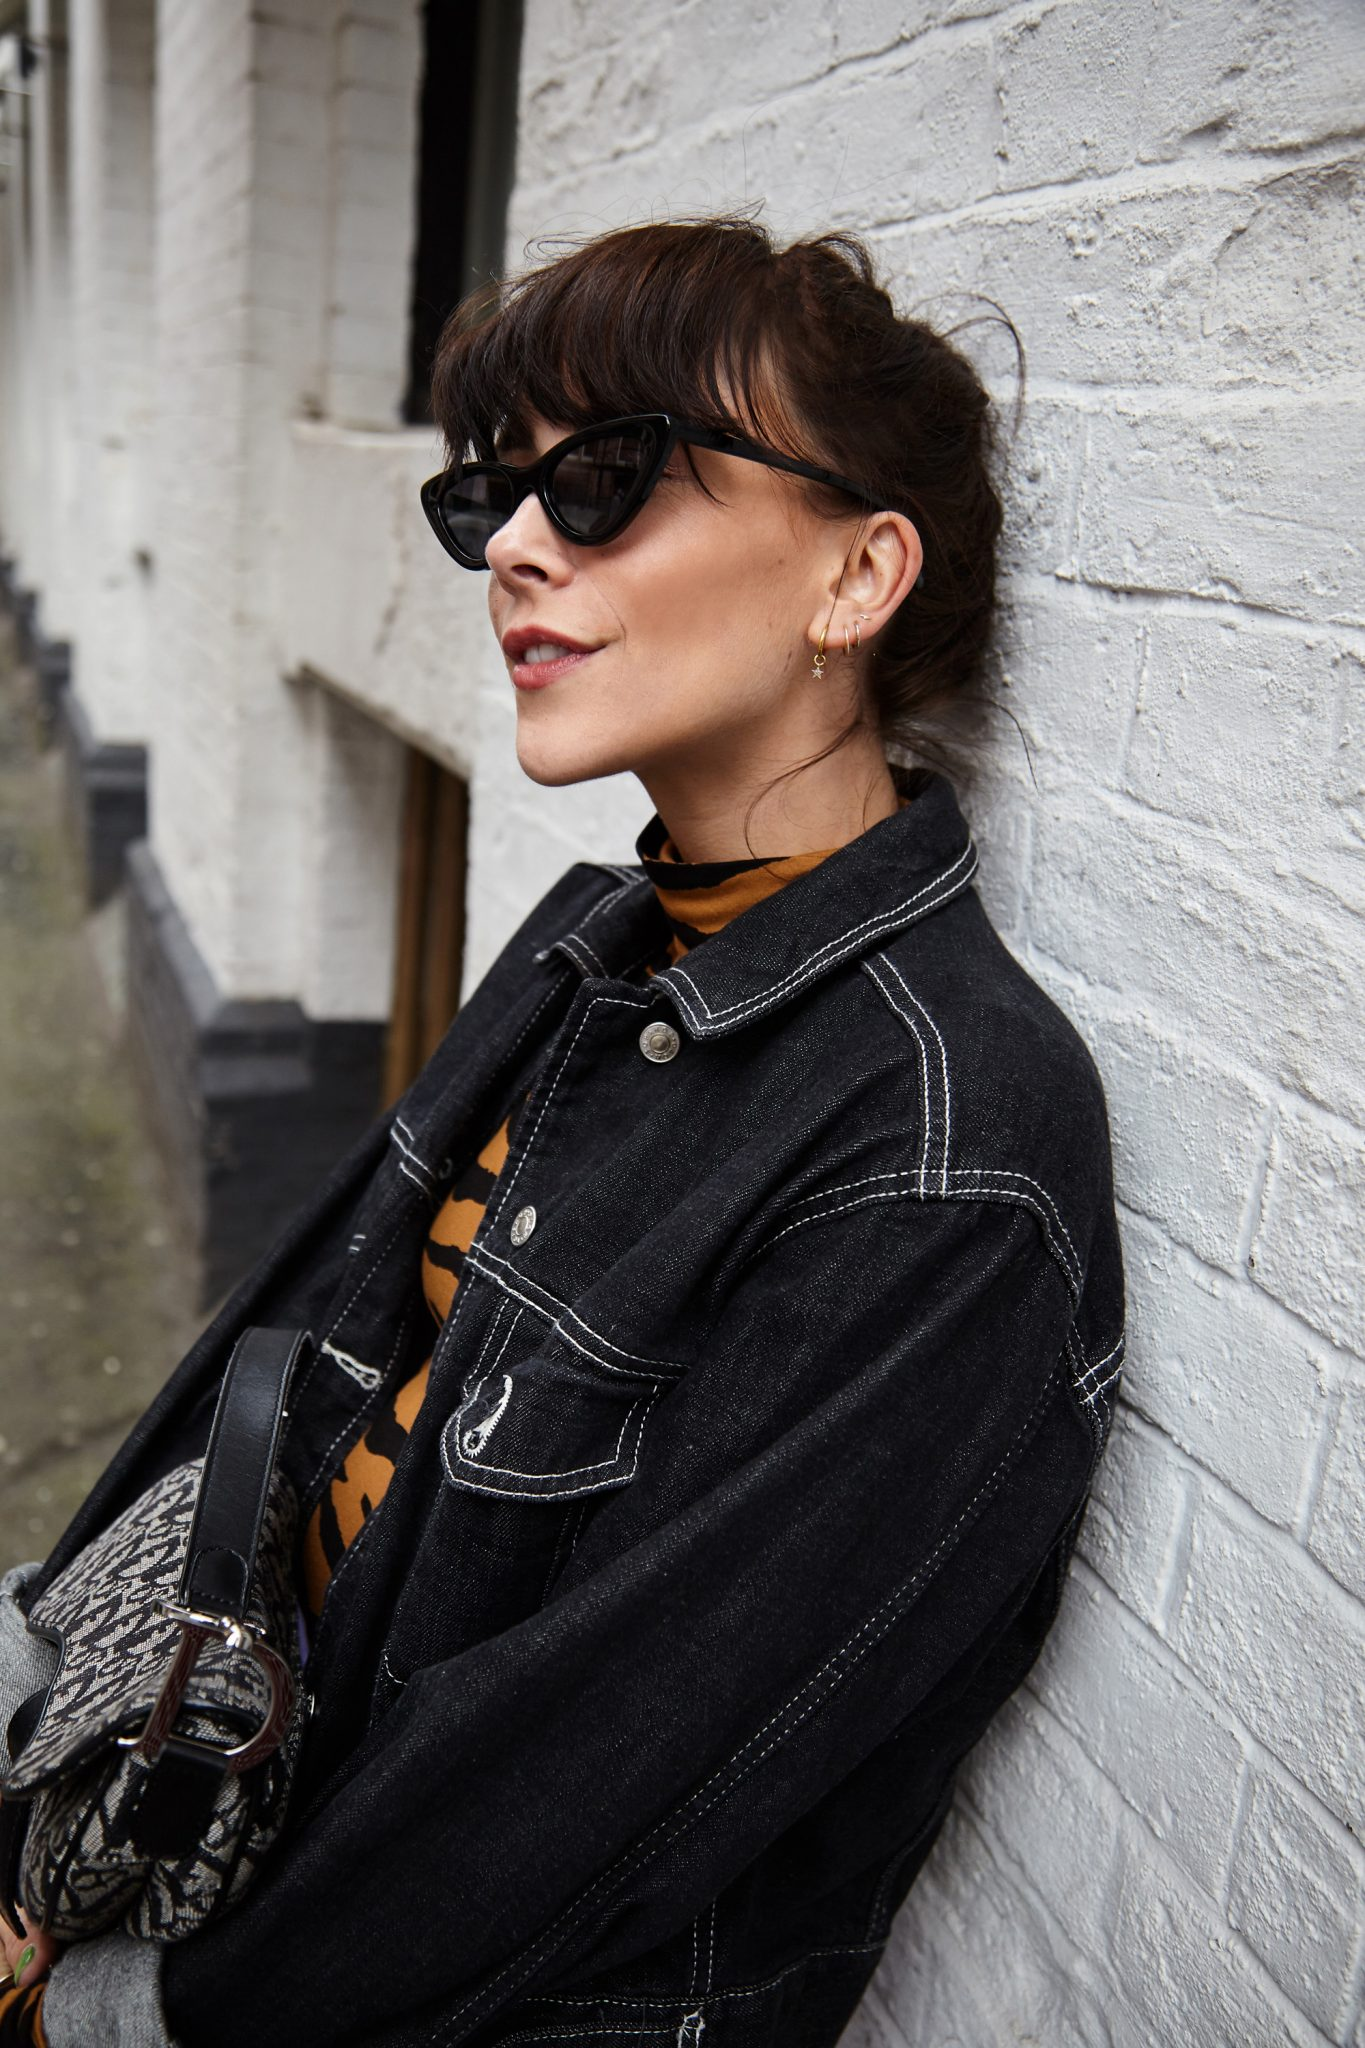 HOW TO STYLE CAT EYE SUNGLASSES